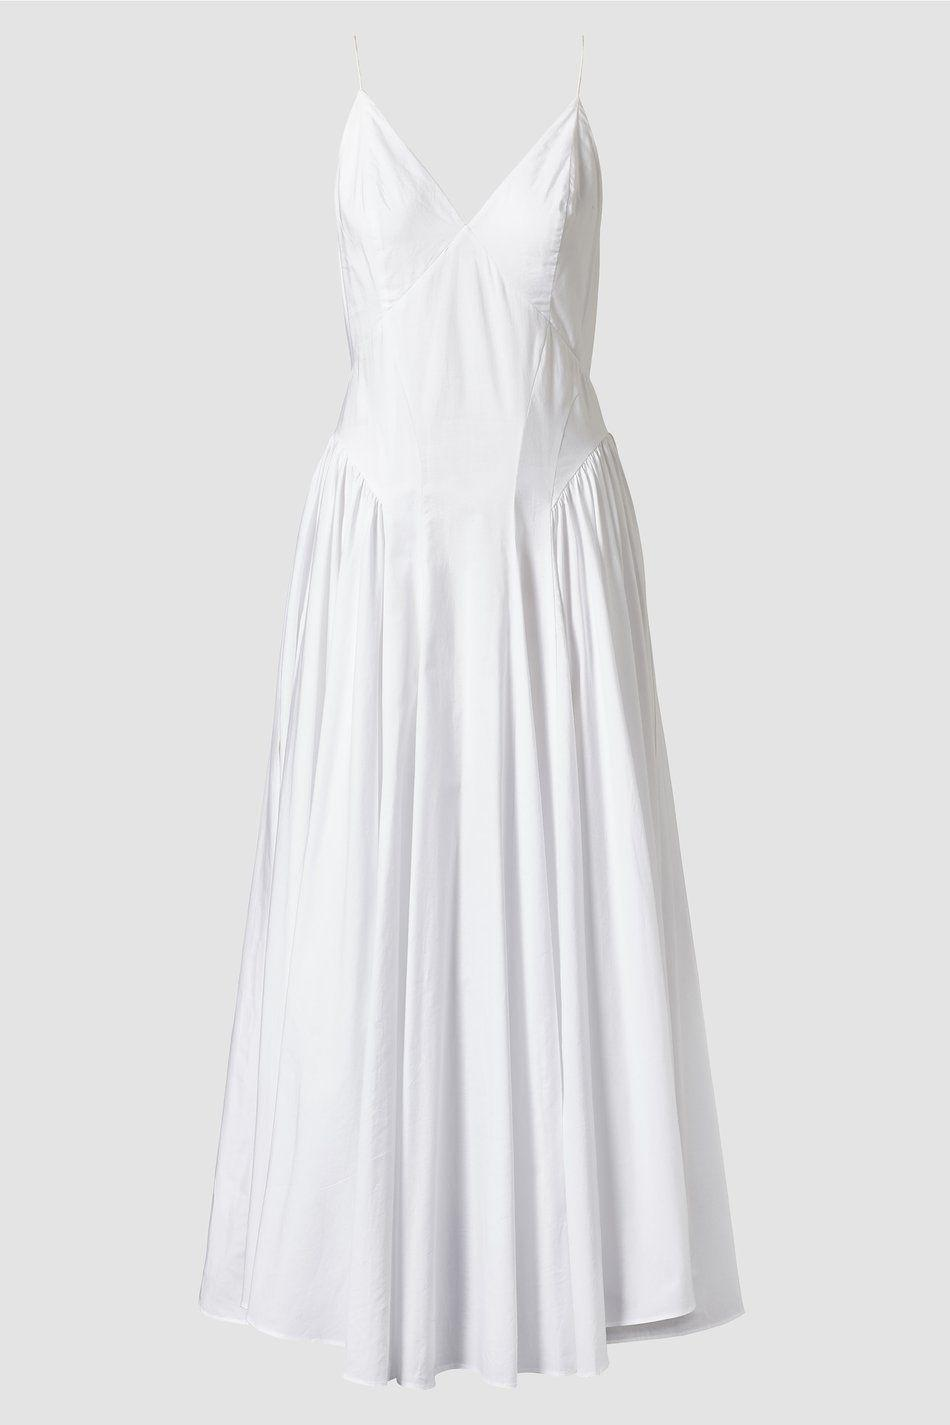 """<p><strong>Tove</strong></p><p>tove-studio.com</p><p><strong>£605.00</strong></p><p><a href=""""https://tove-studio.com/products/maren-organic-cotton-maxi-slip-dress"""" rel=""""nofollow noopener"""" target=""""_blank"""" data-ylk=""""slk:Shop Now"""" class=""""link rapid-noclick-resp"""">Shop Now</a></p><p>Naomi Sims was frequently seen in an elegant white dress, and this number from Tove Studio is surely right up her ally. Dress it up or down to get the look.</p>"""